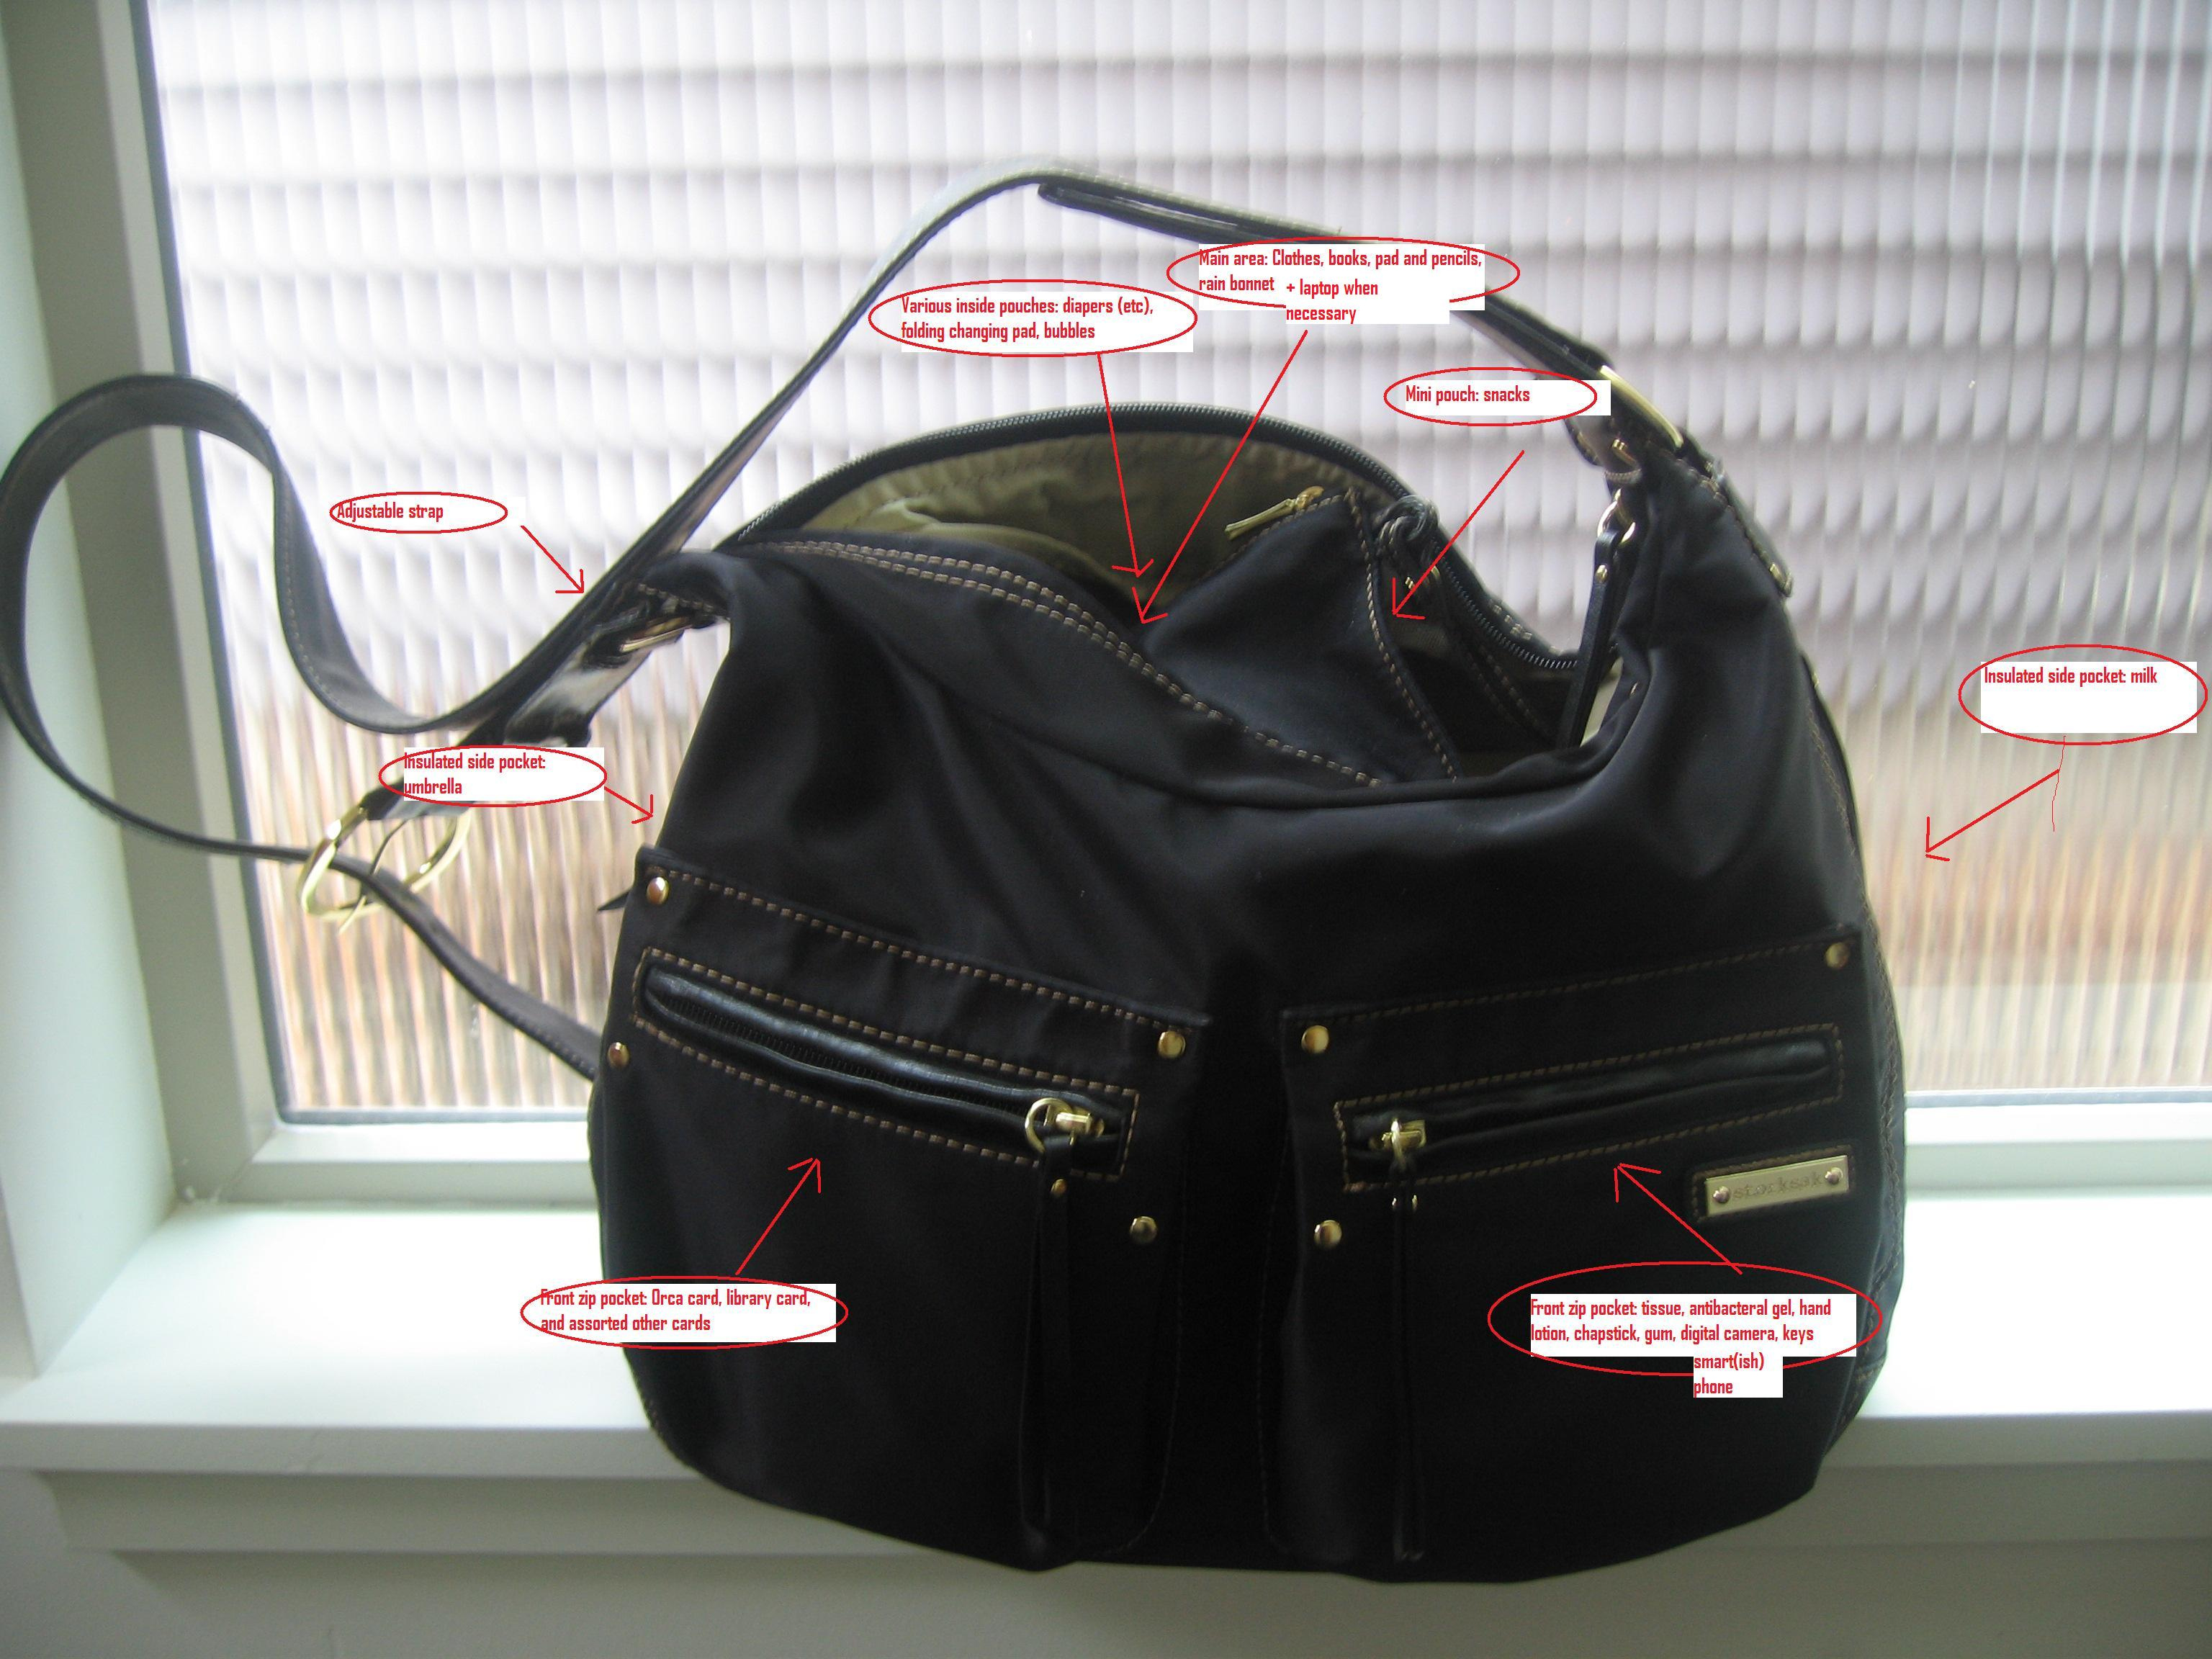 Anatomy of a bus bag